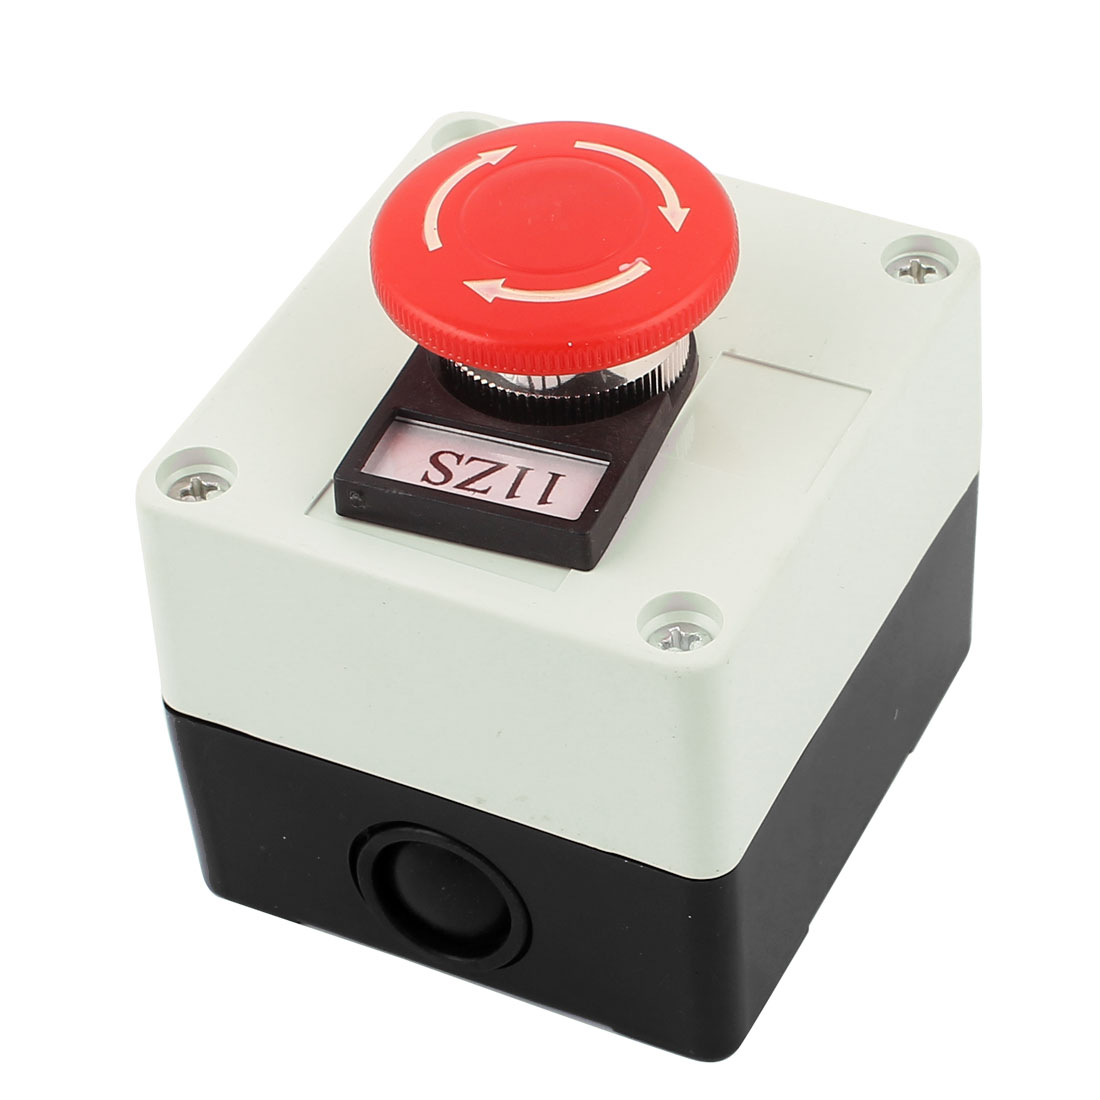 Ui 800V Ith 10A DPST Plastic Case Rotary Reset Emergency Stop Red Mushroom Head Push Button Switch